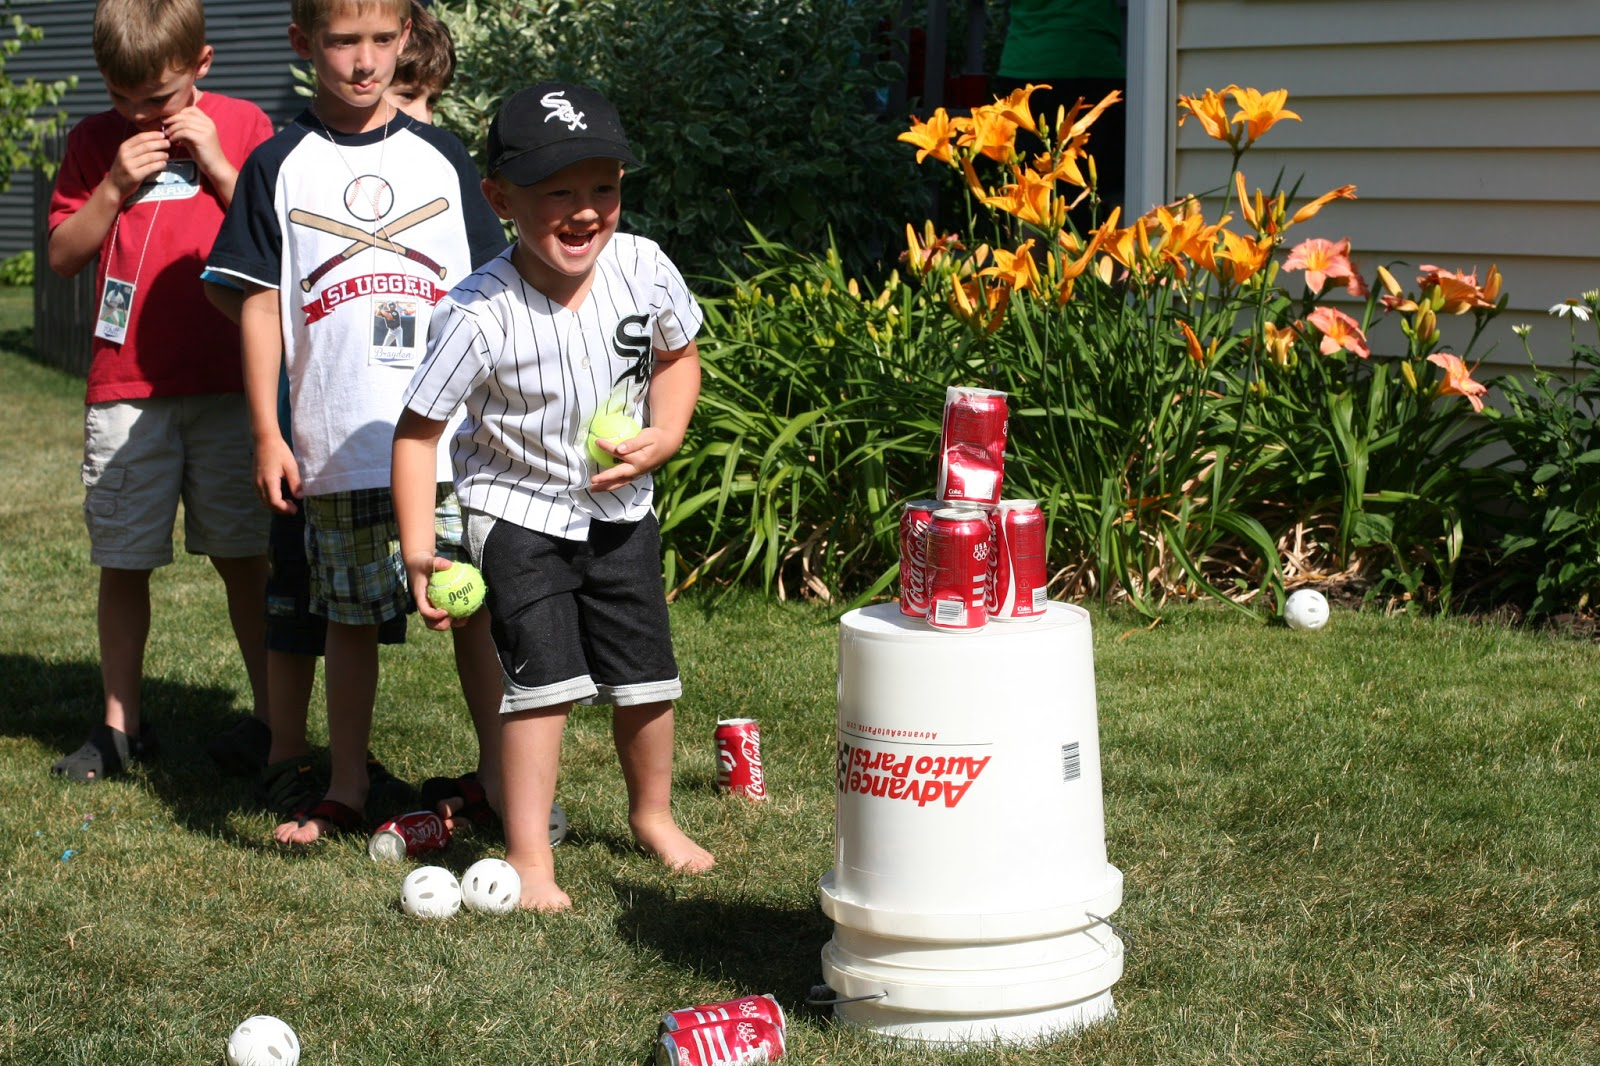 Baseball Birthday Party Games